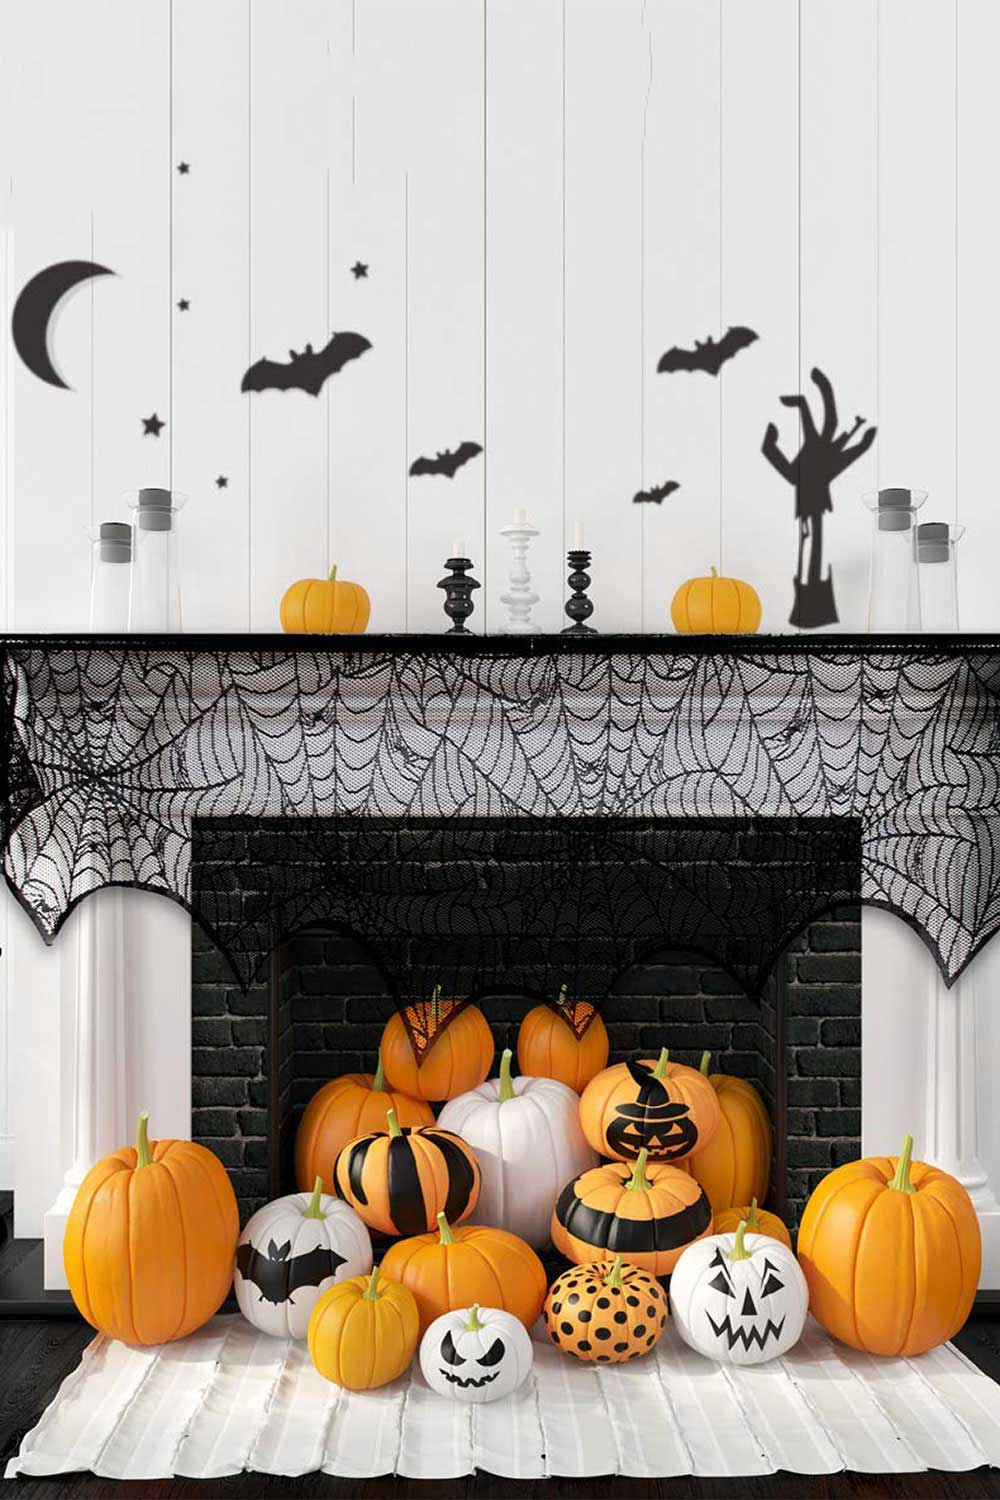 13 Amazon Halloween Decorations You Can Get Last Minute